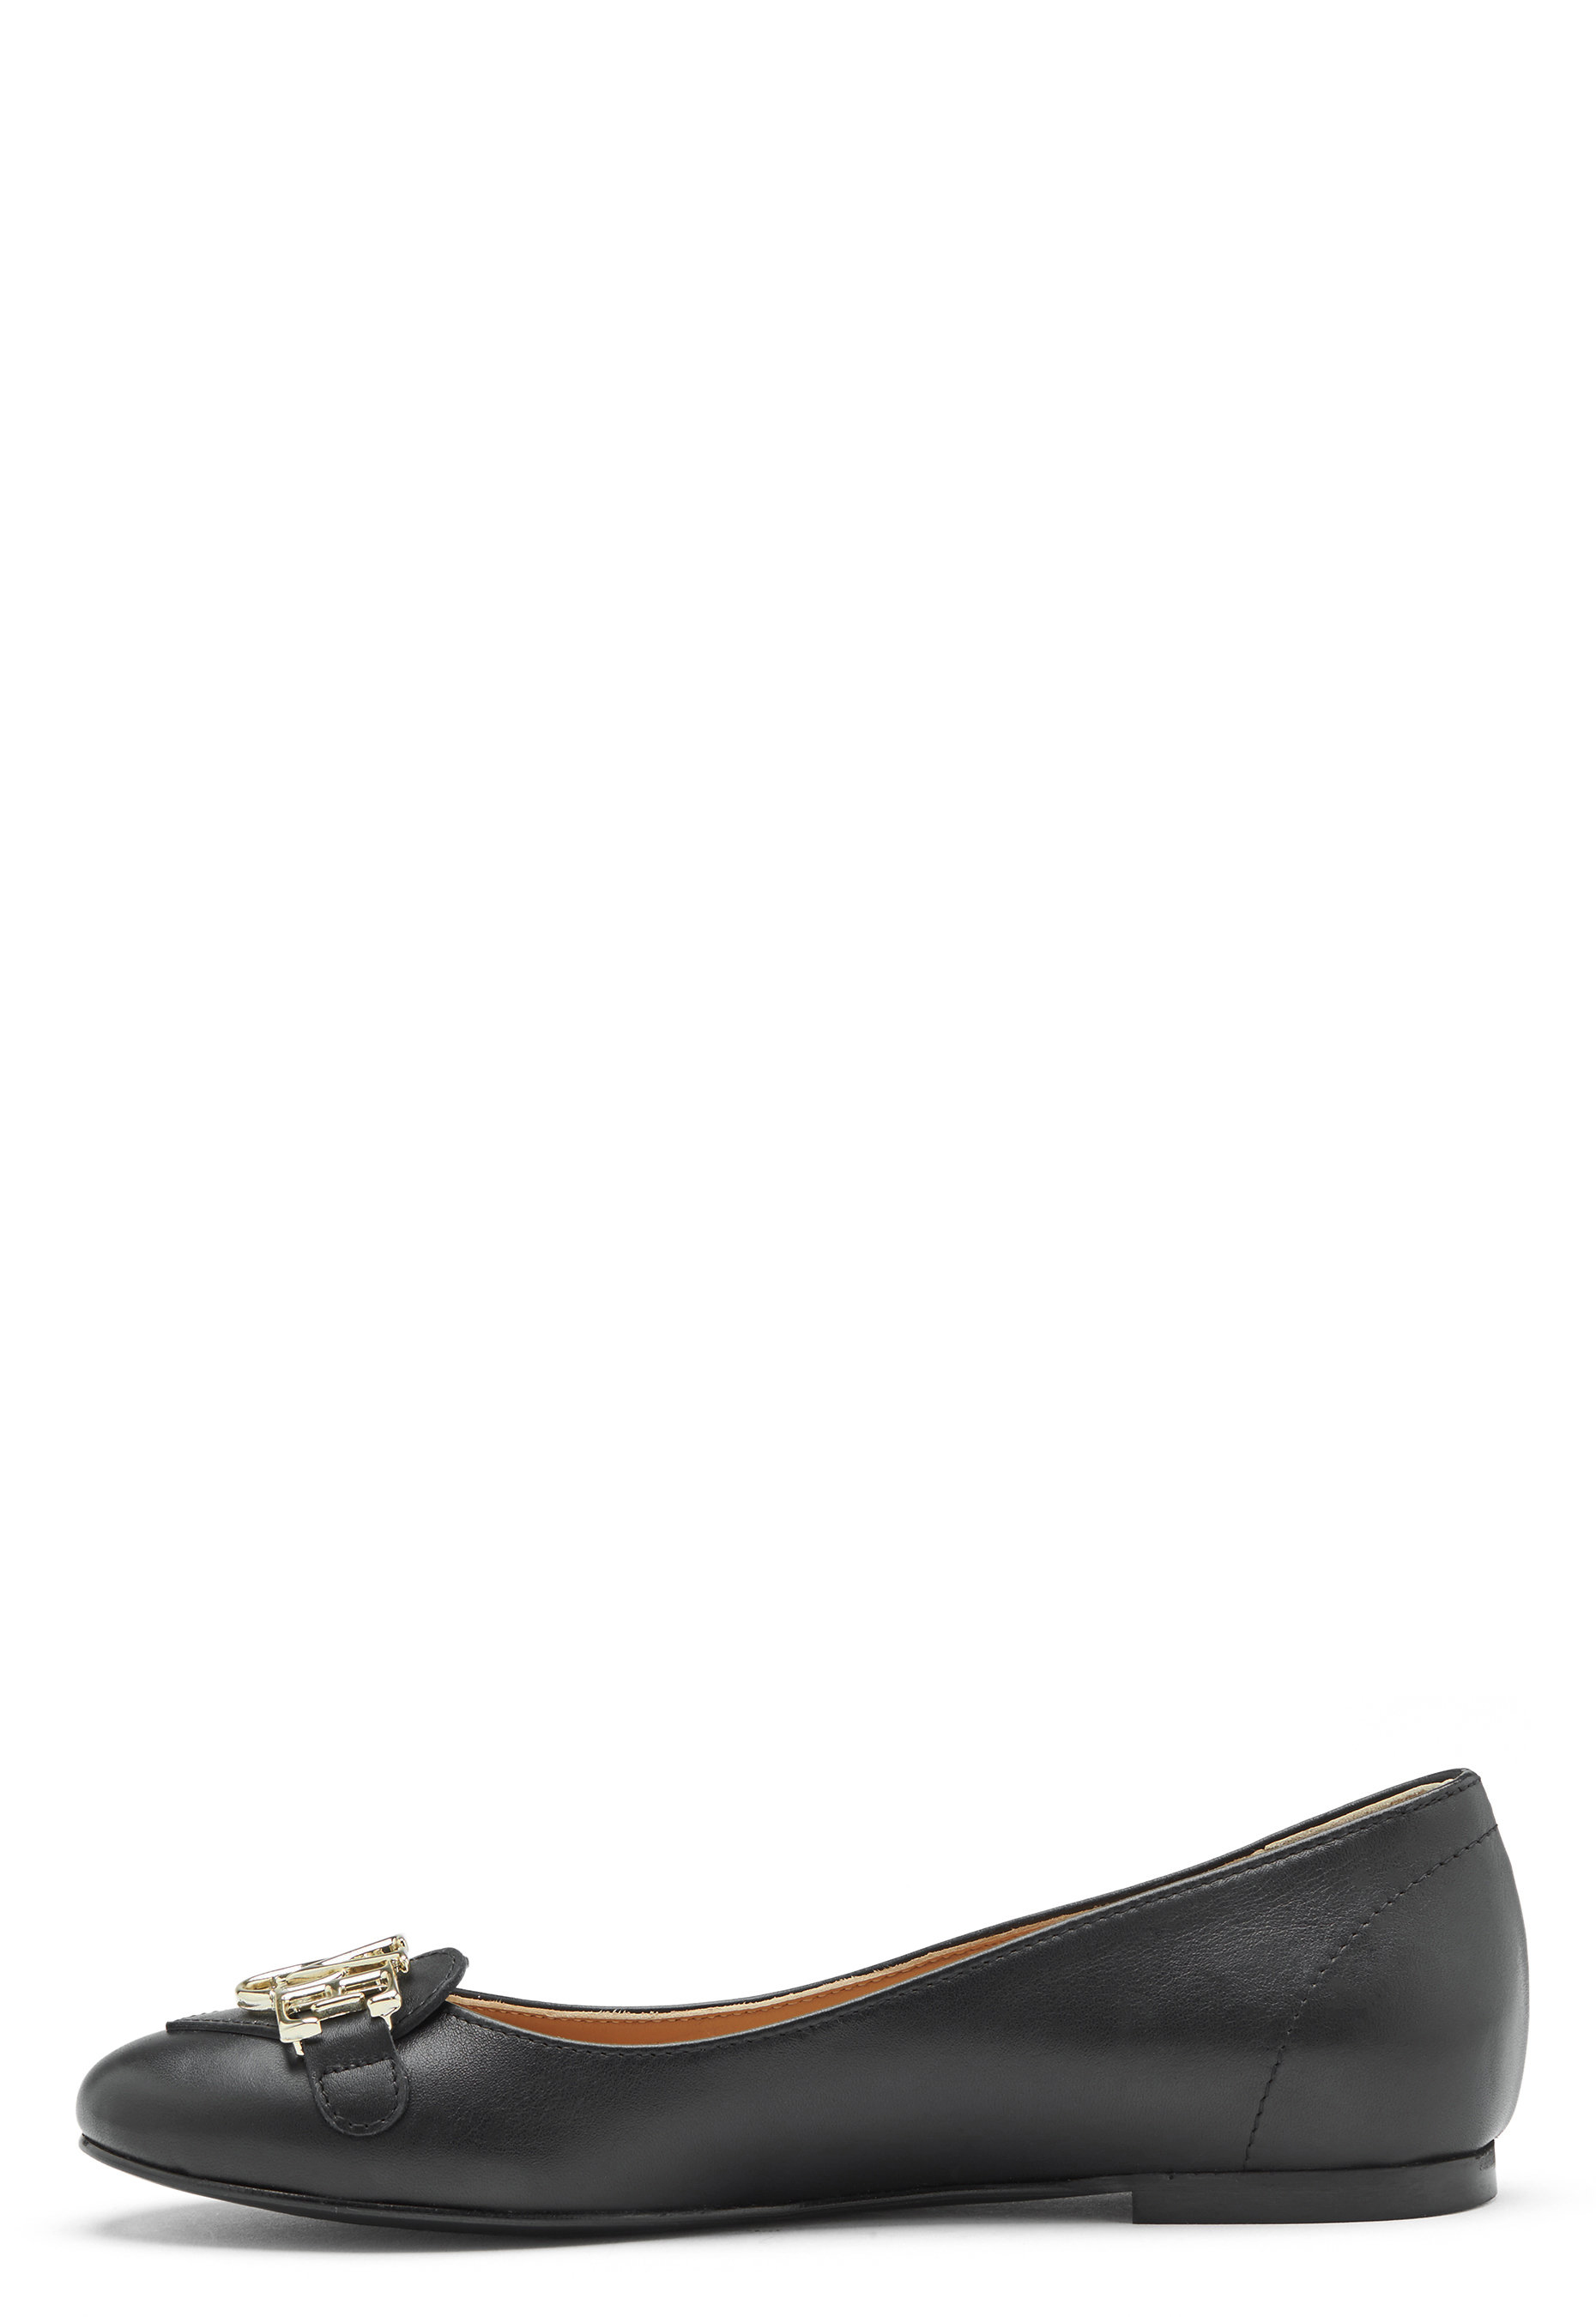 cheap for discount a804e 3dc2a Love Moschino Ballerina Leather Shoes JA11061C05JA0 - Bubbleroom